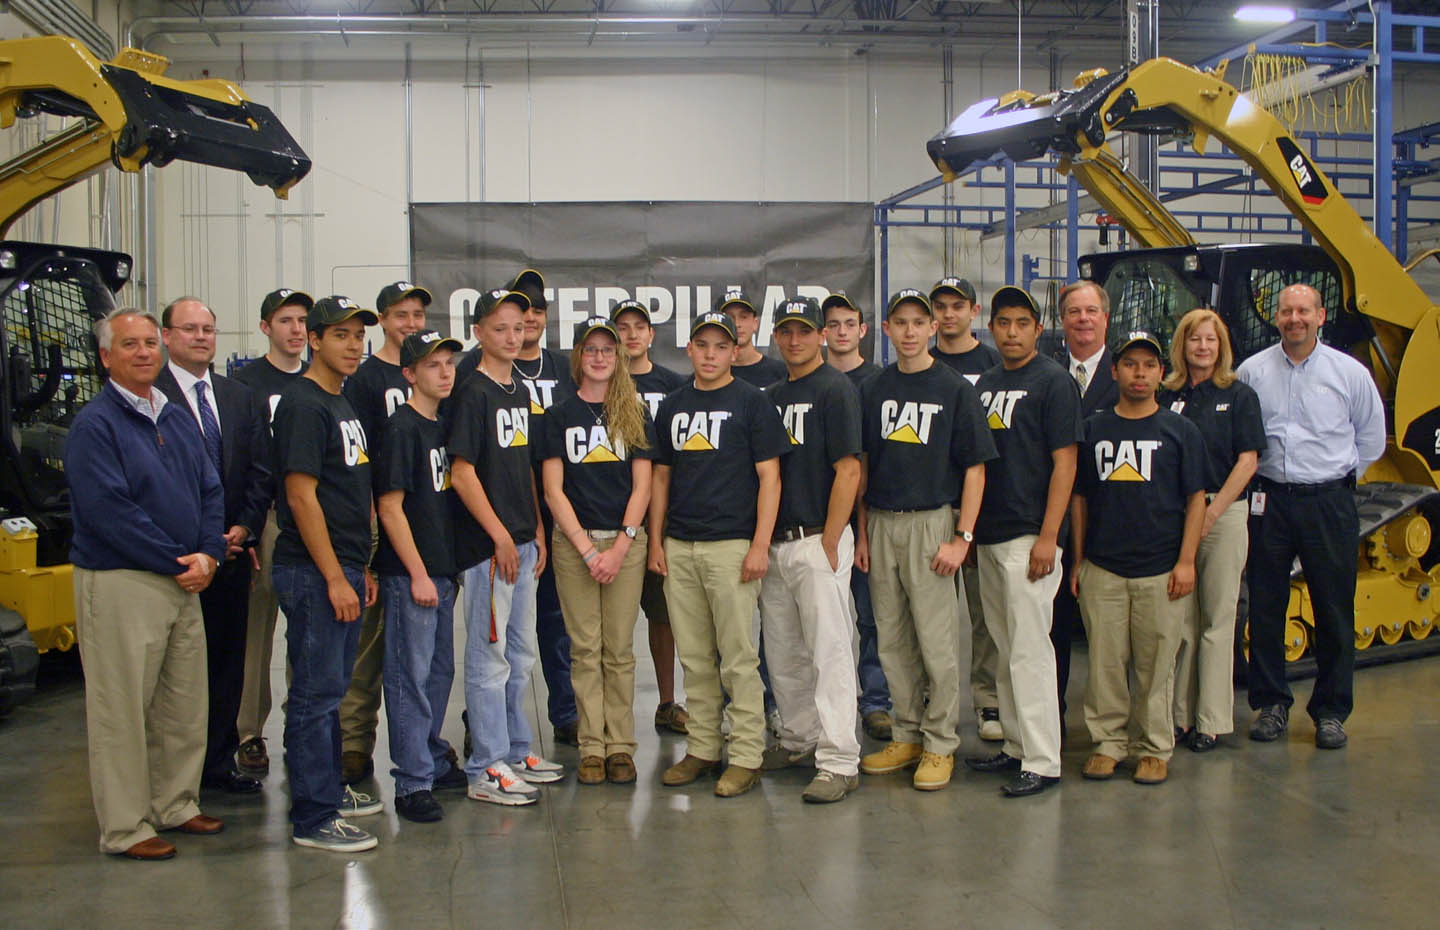 Caterpillar's youth welding apprenticeship inducts 16